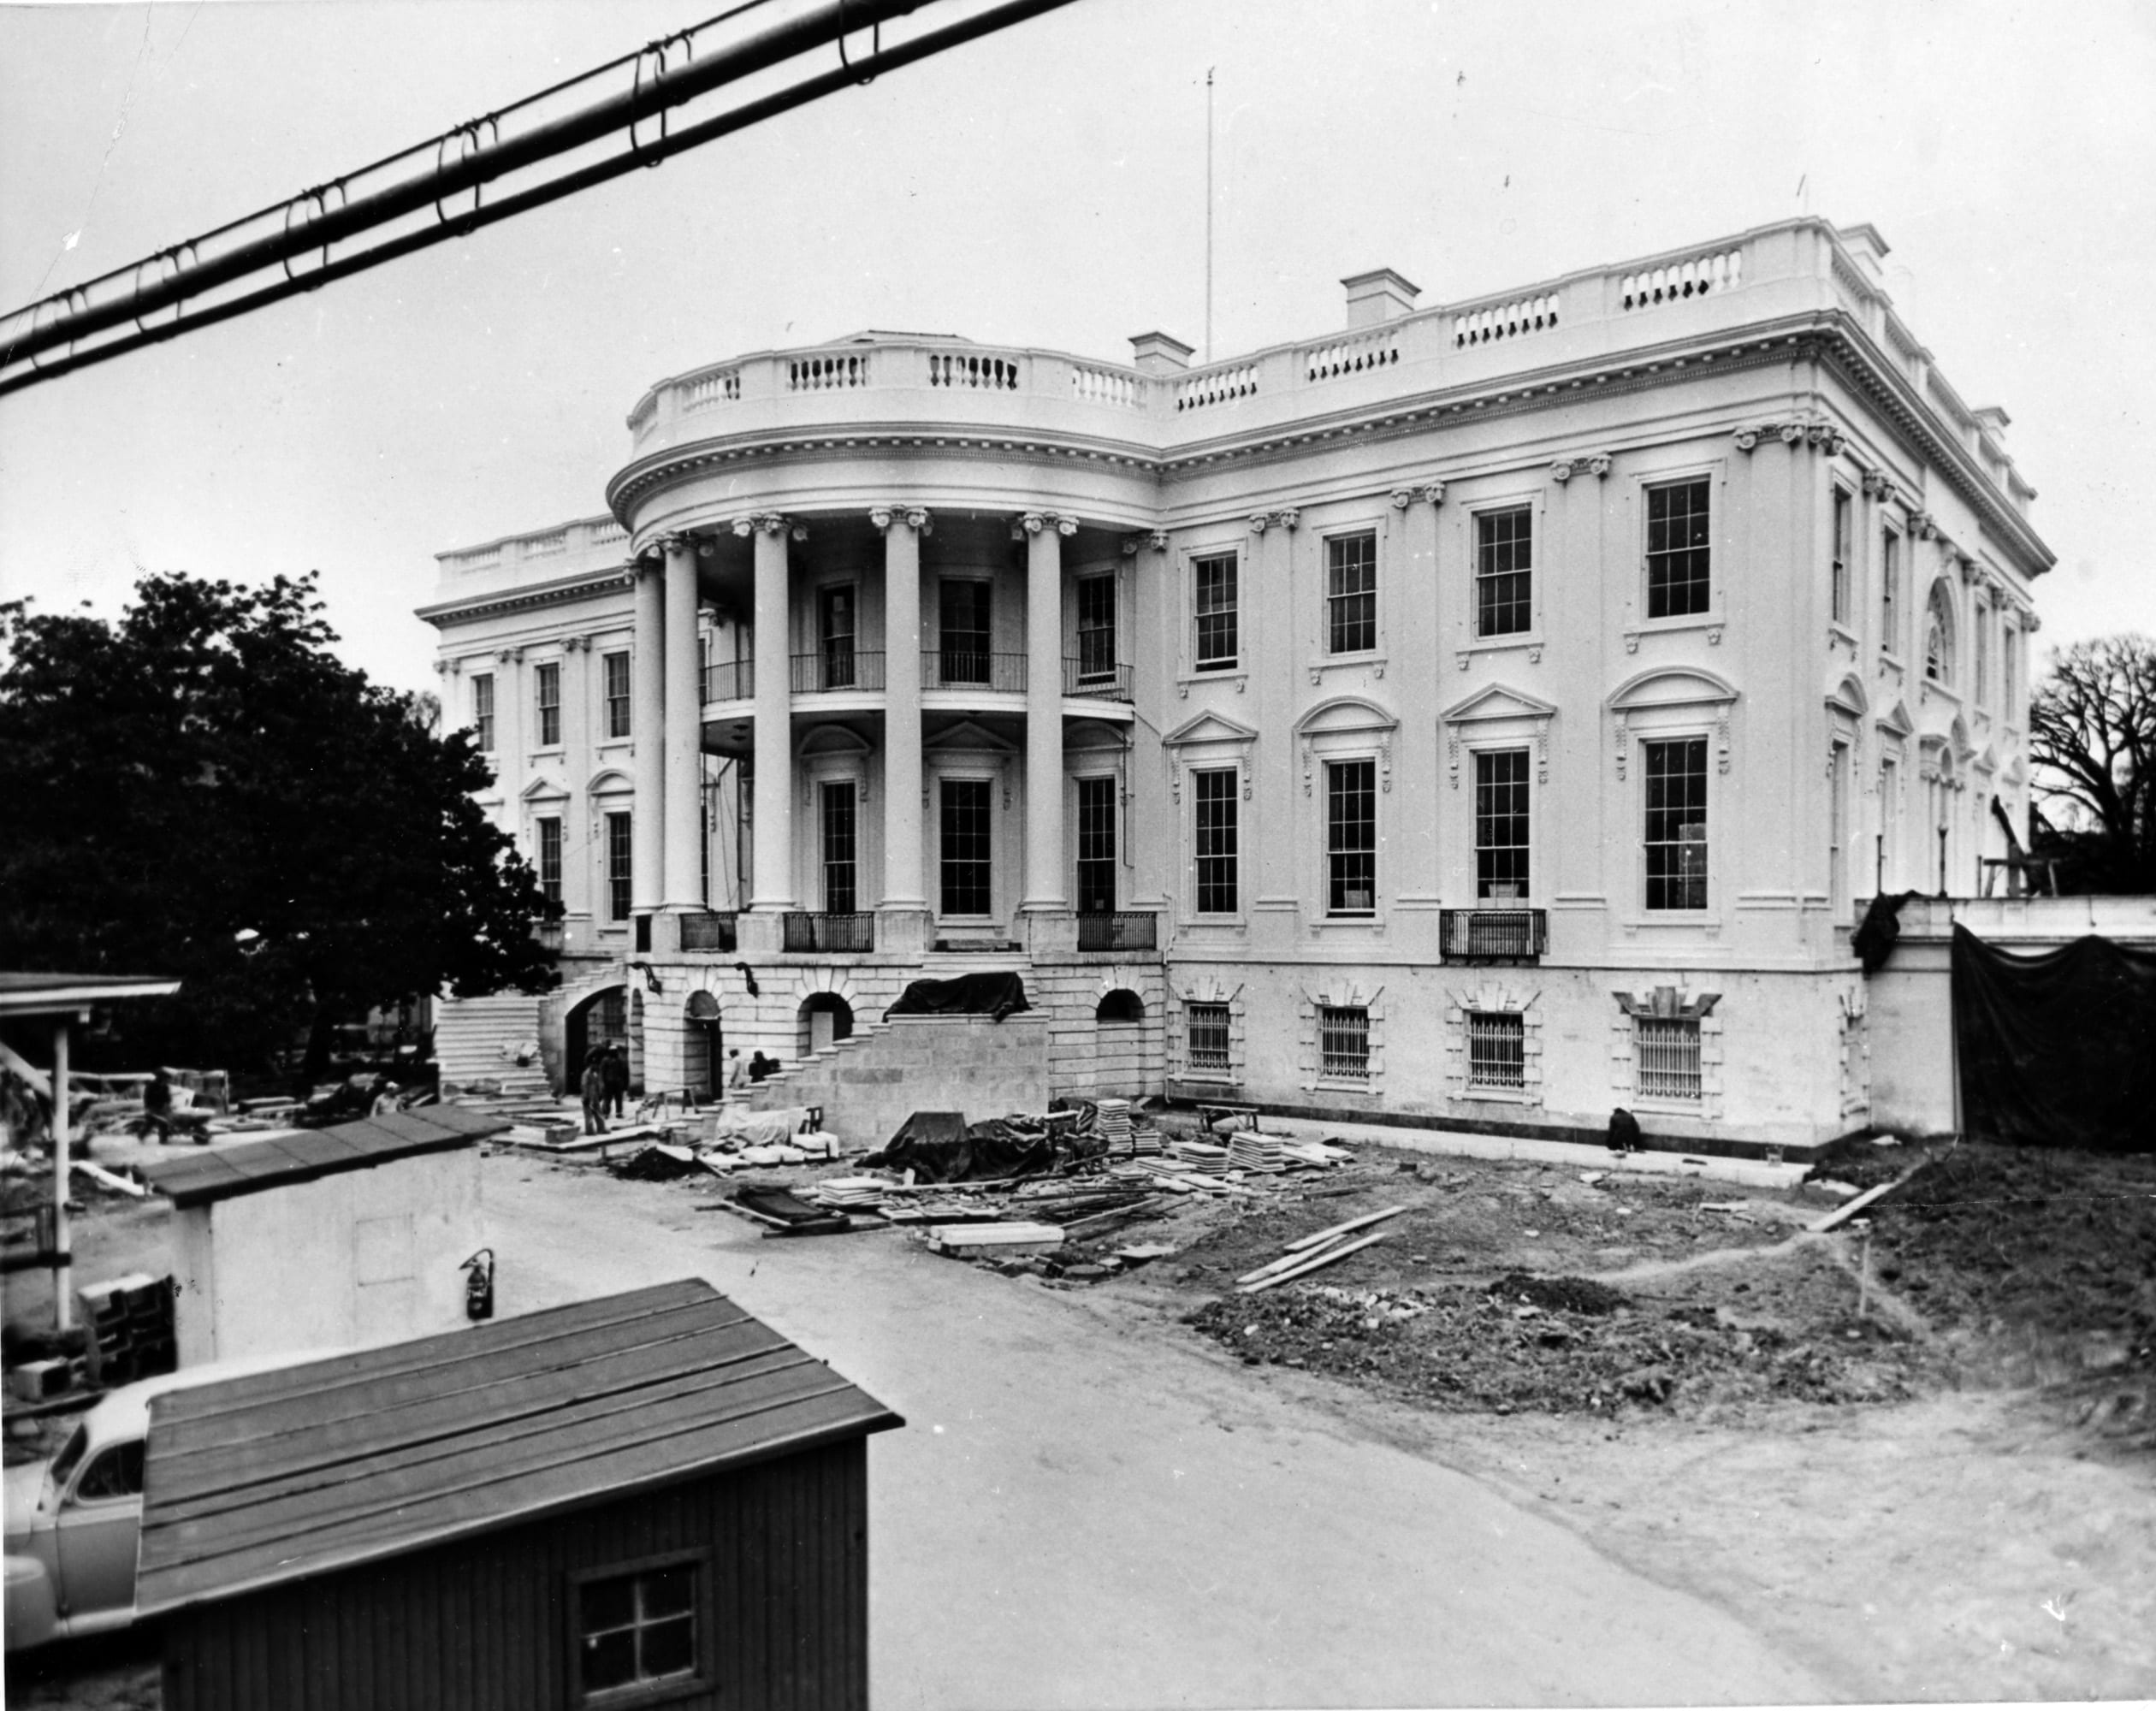 View of the South Portico of the White House - February 16th, 1952